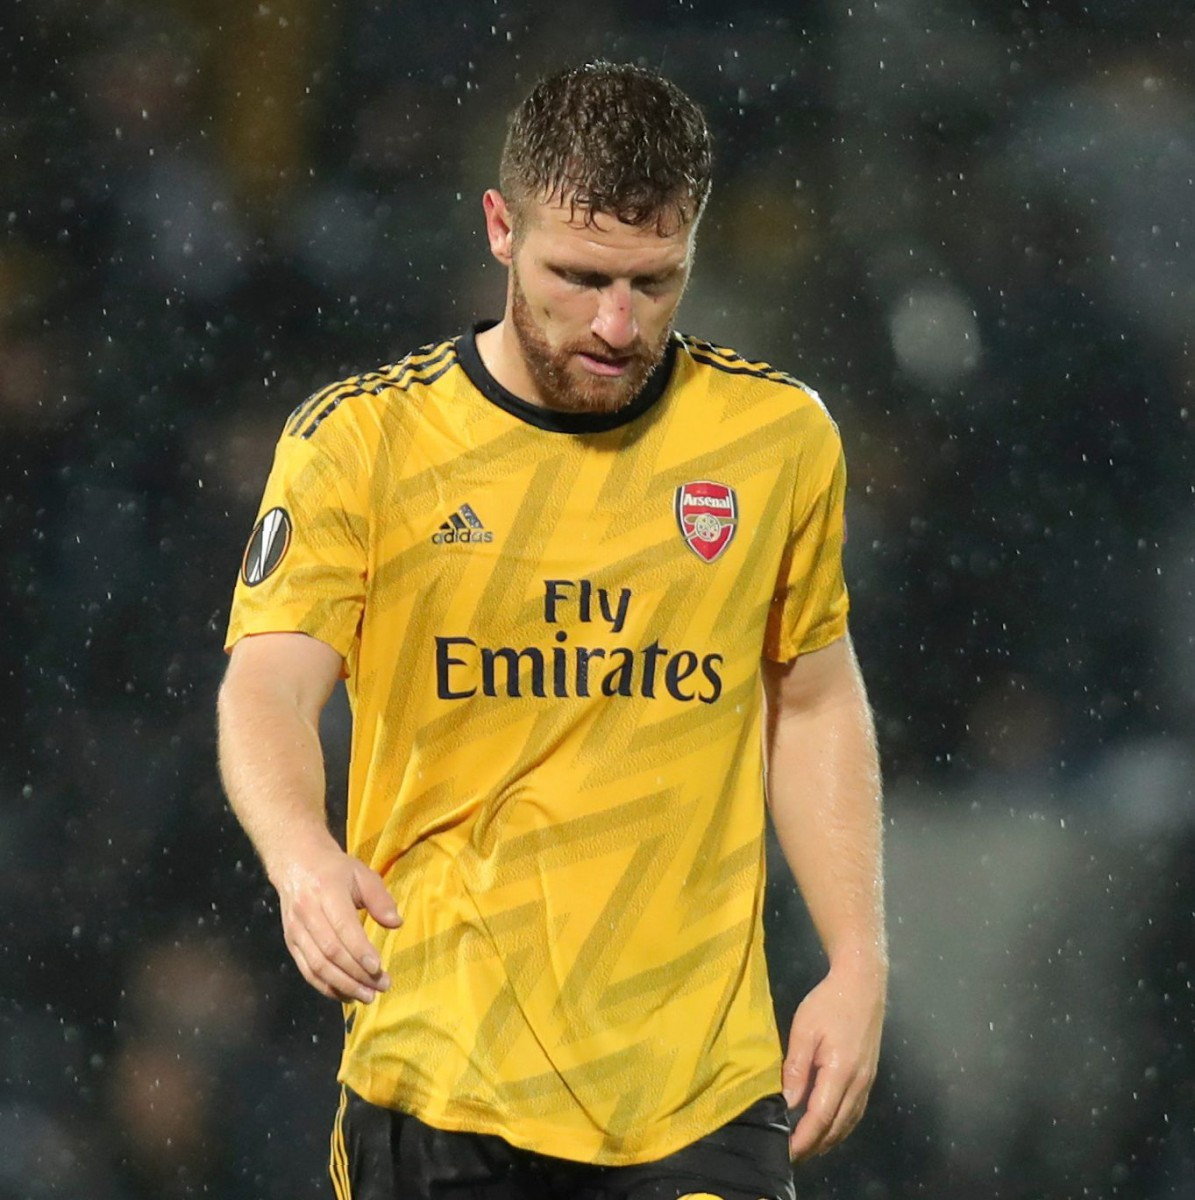 The German has played just ten matches for the Gunners this season